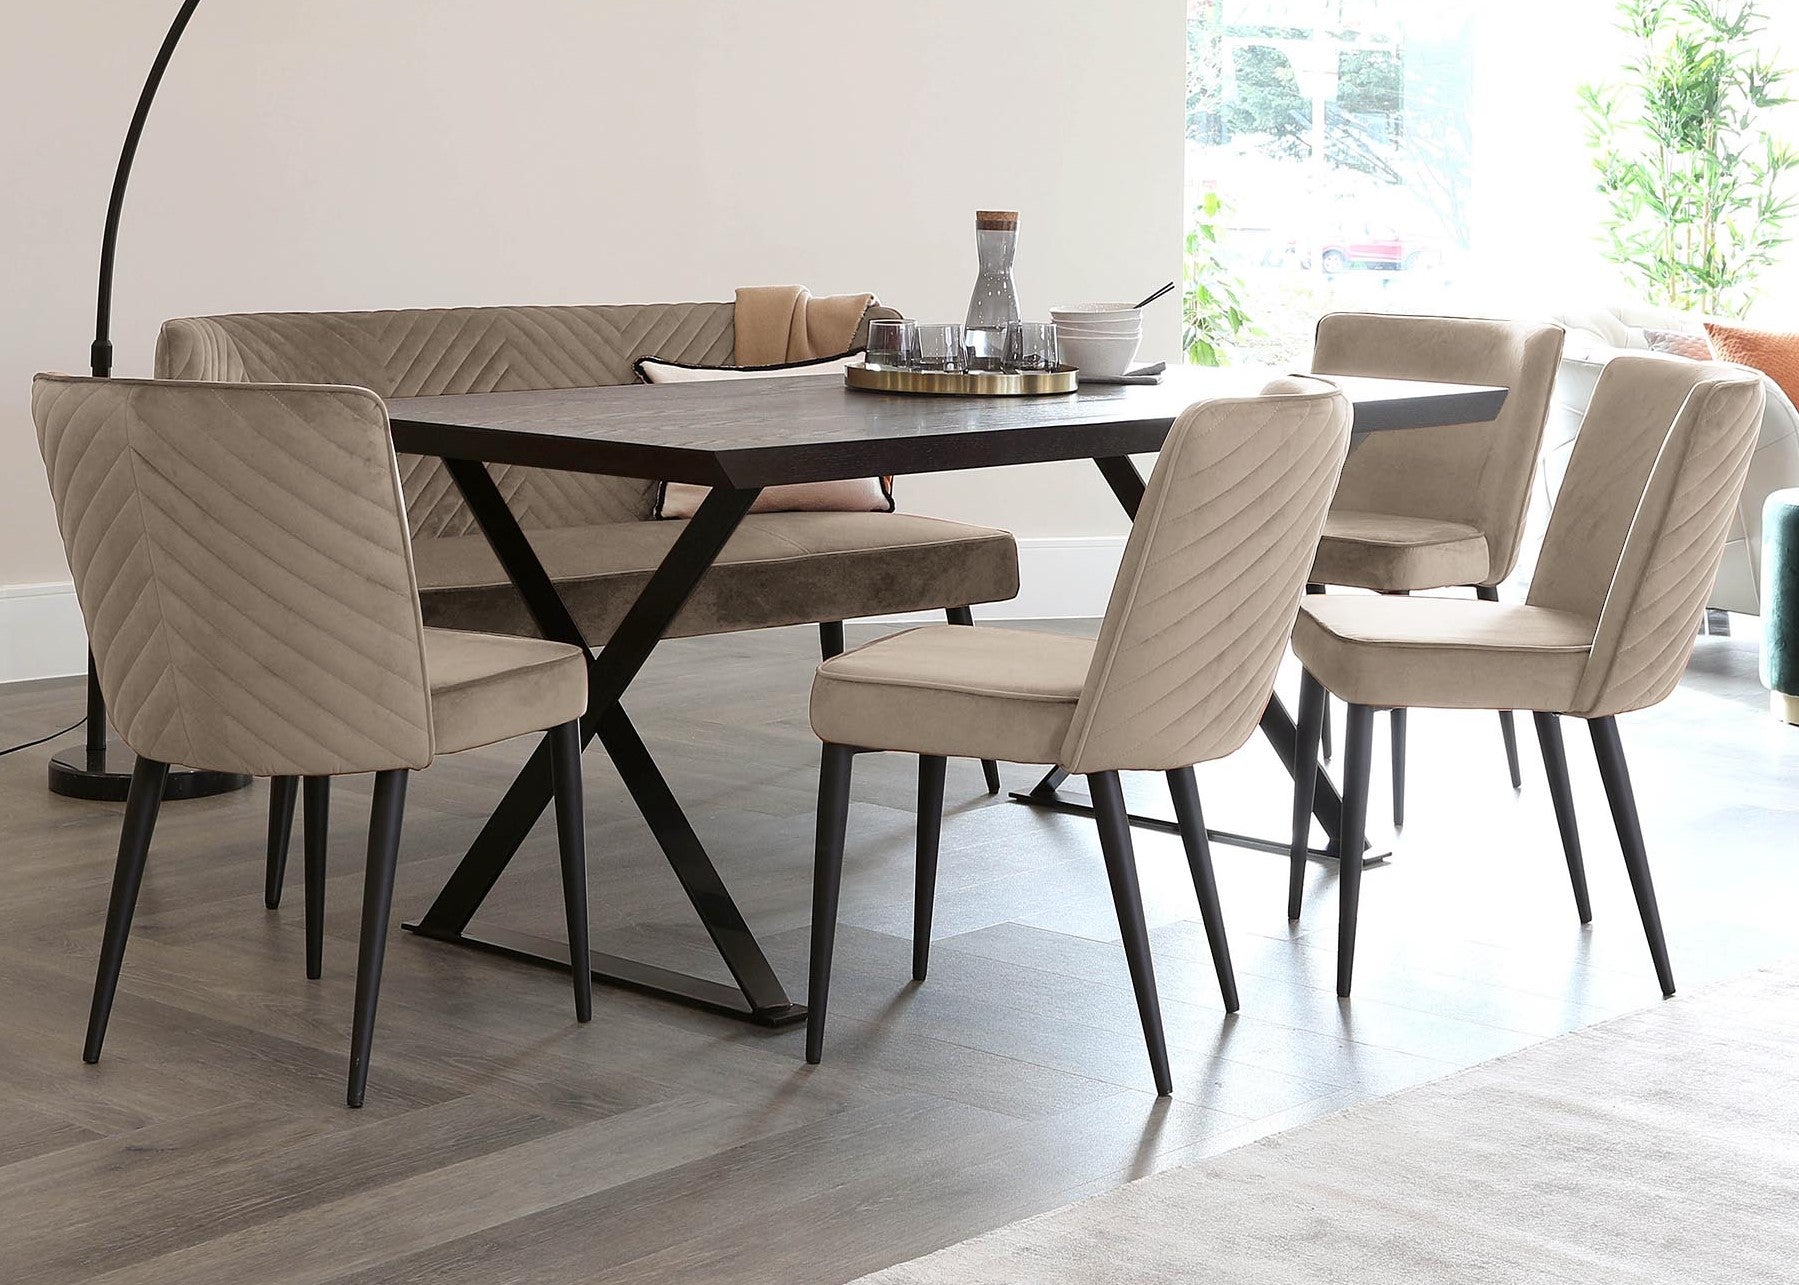 Stylish Matching Bar Stools and Dining Chairs